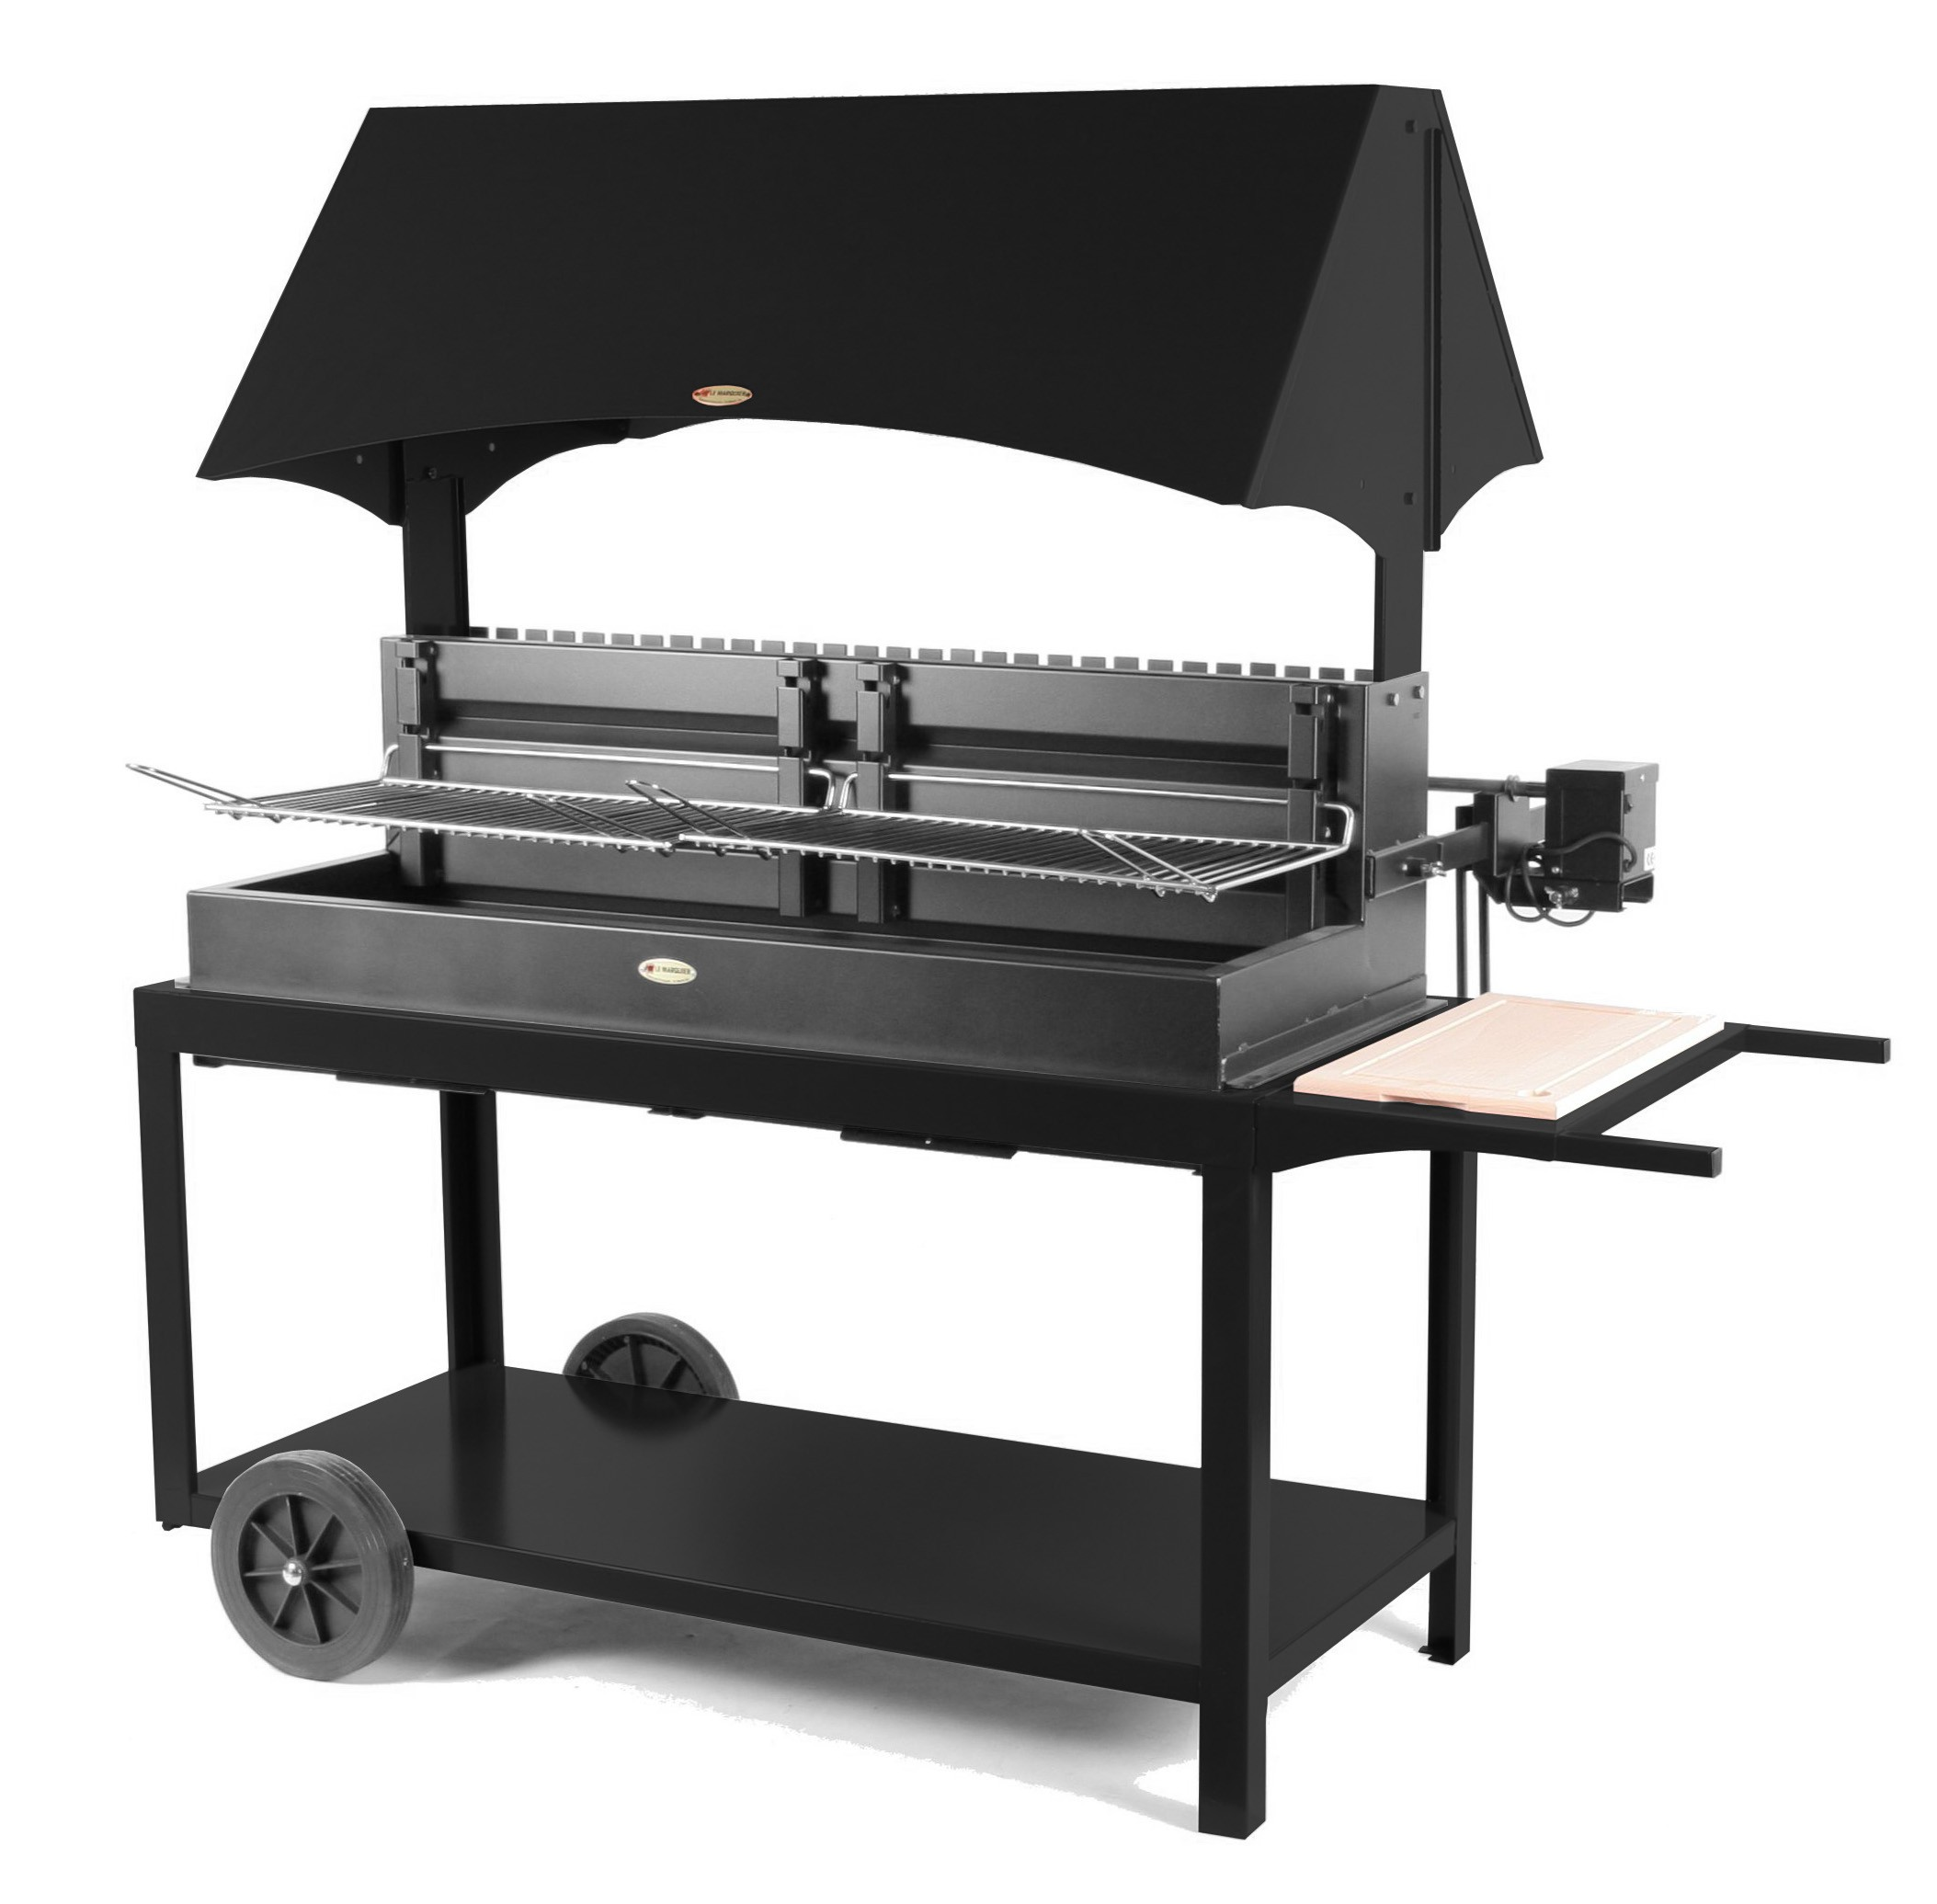 Barbecue charbon tourne broche - Tourne broche barbecue ...